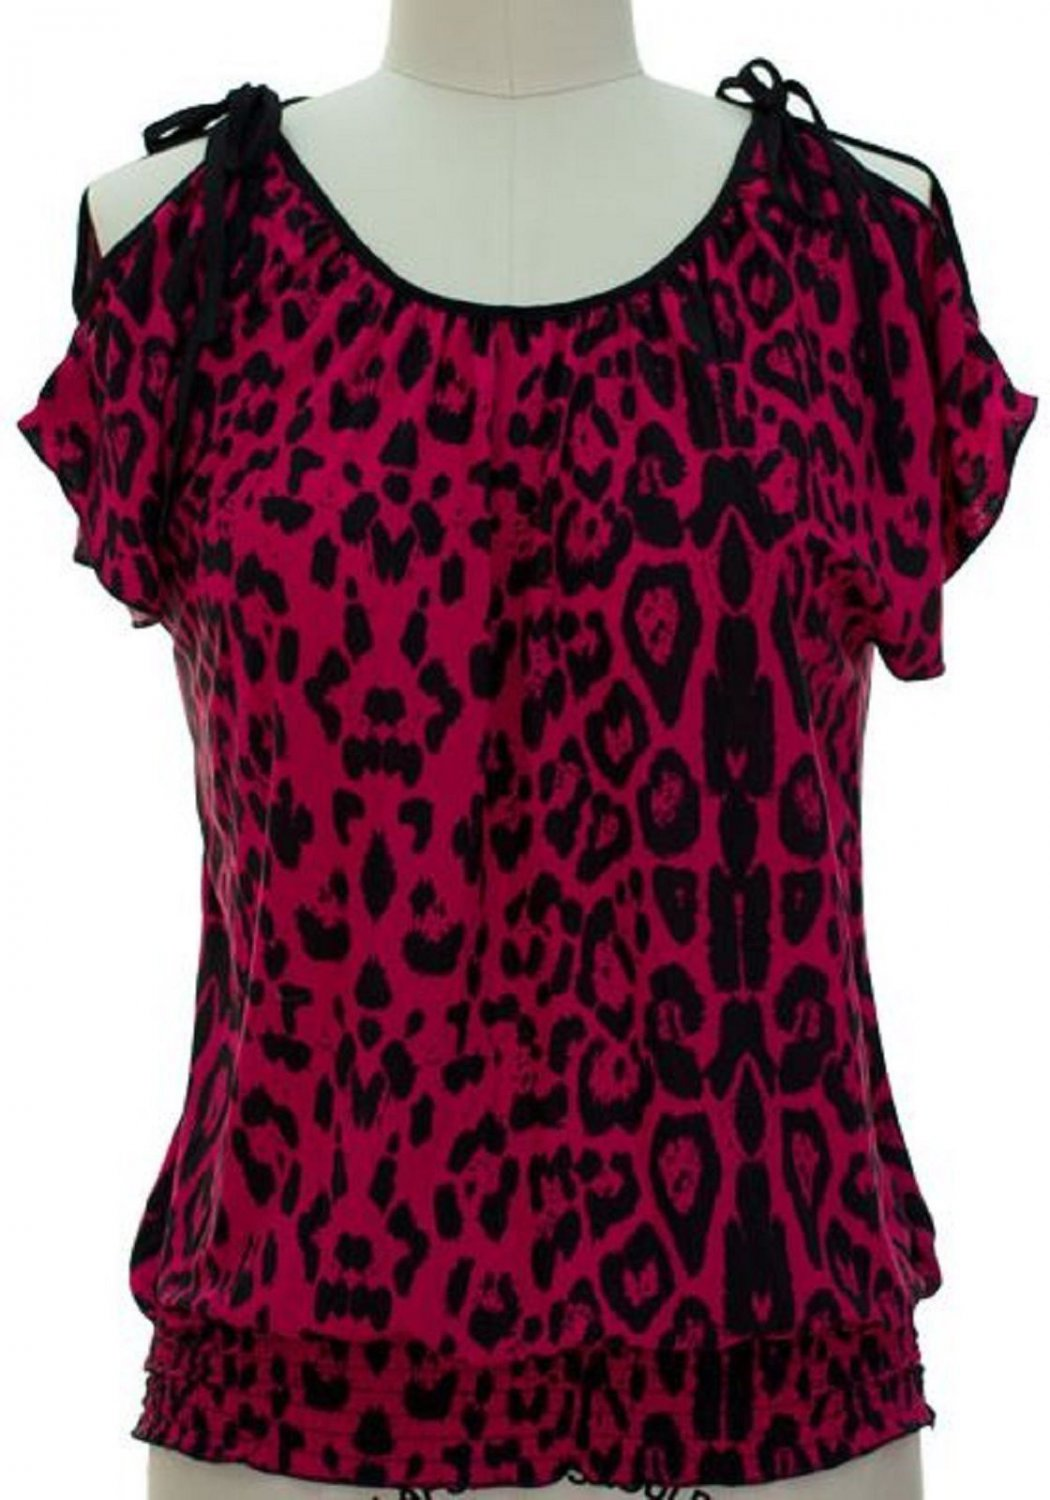 jon and anna S Pink Cold Shoulder Top Leopard Print Blouse Peek-a-Boo Shirt Womens 717